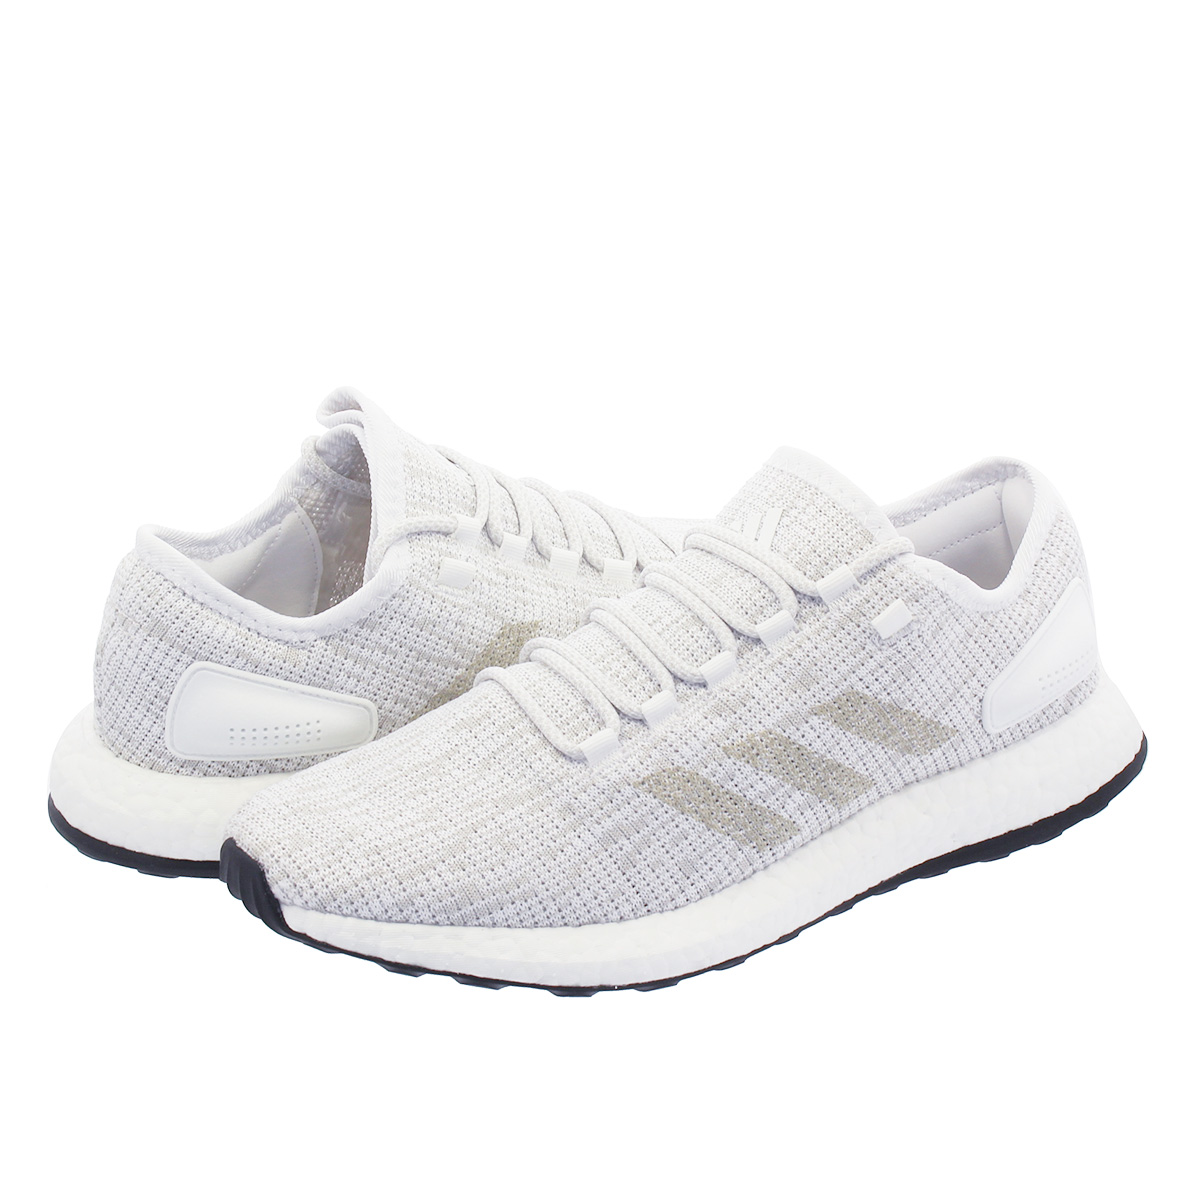 online store d7a98 08024 adidas PureBOOST Adidas pure boost RUNNING WHITE GREY ONE CRYSTAL WHITE  bb6277 ...